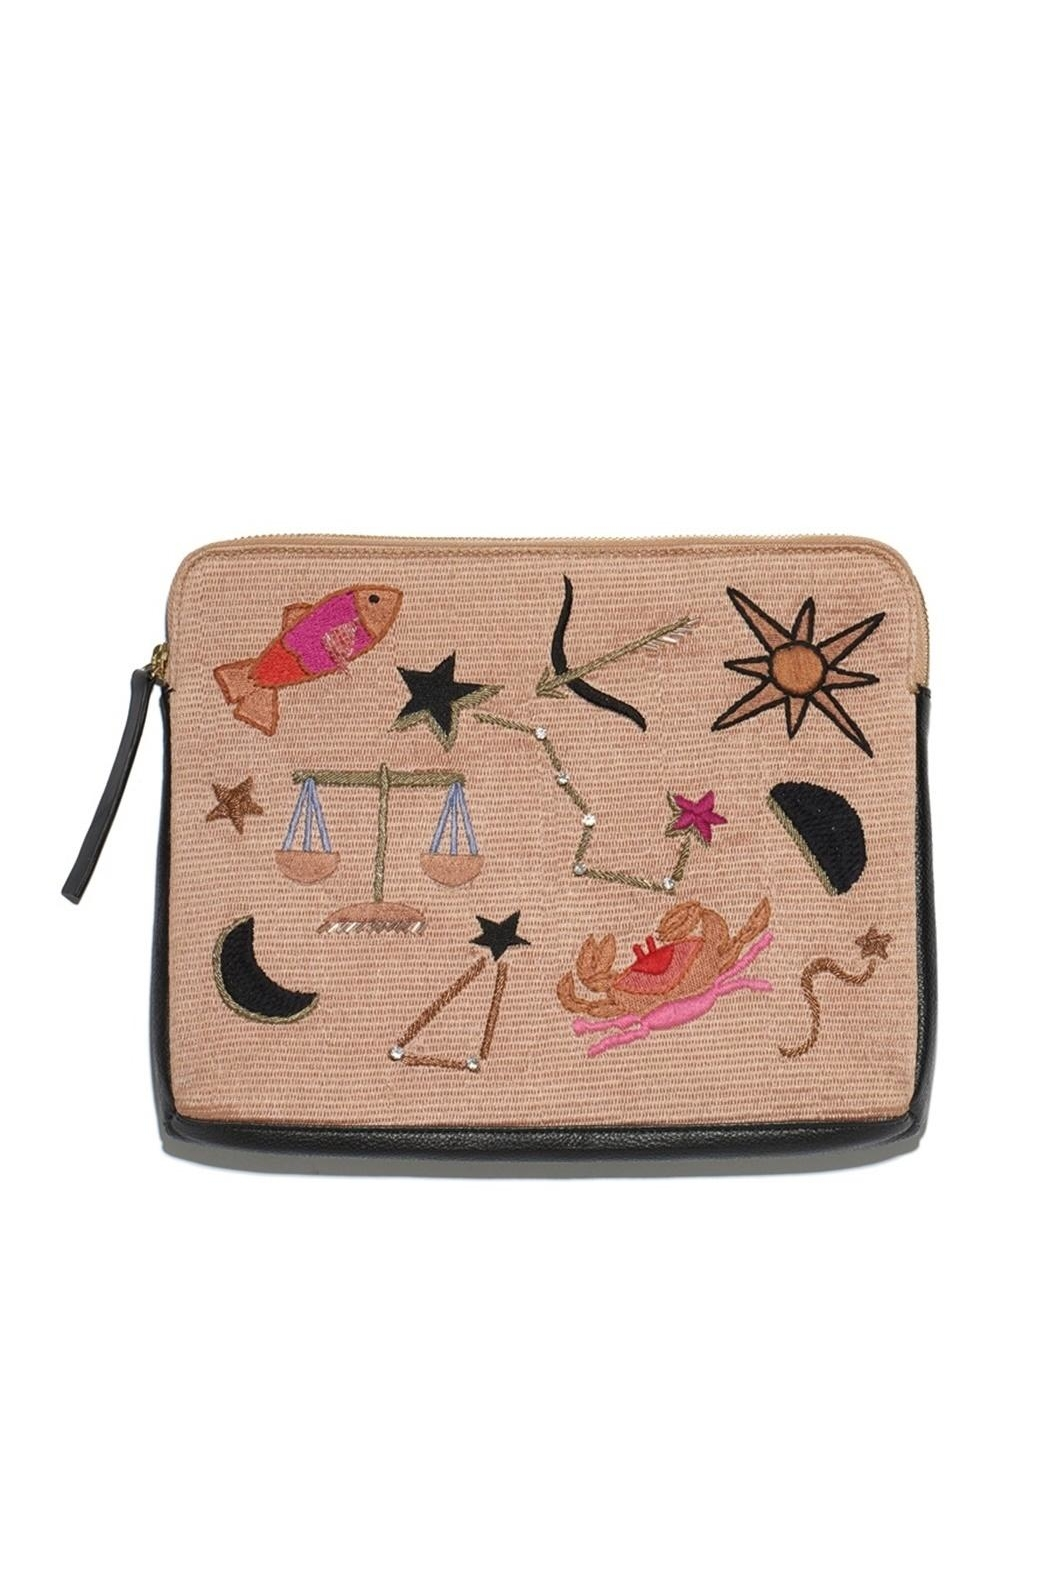 Lizzie Fortunato Horoscope Clutch - Main Image